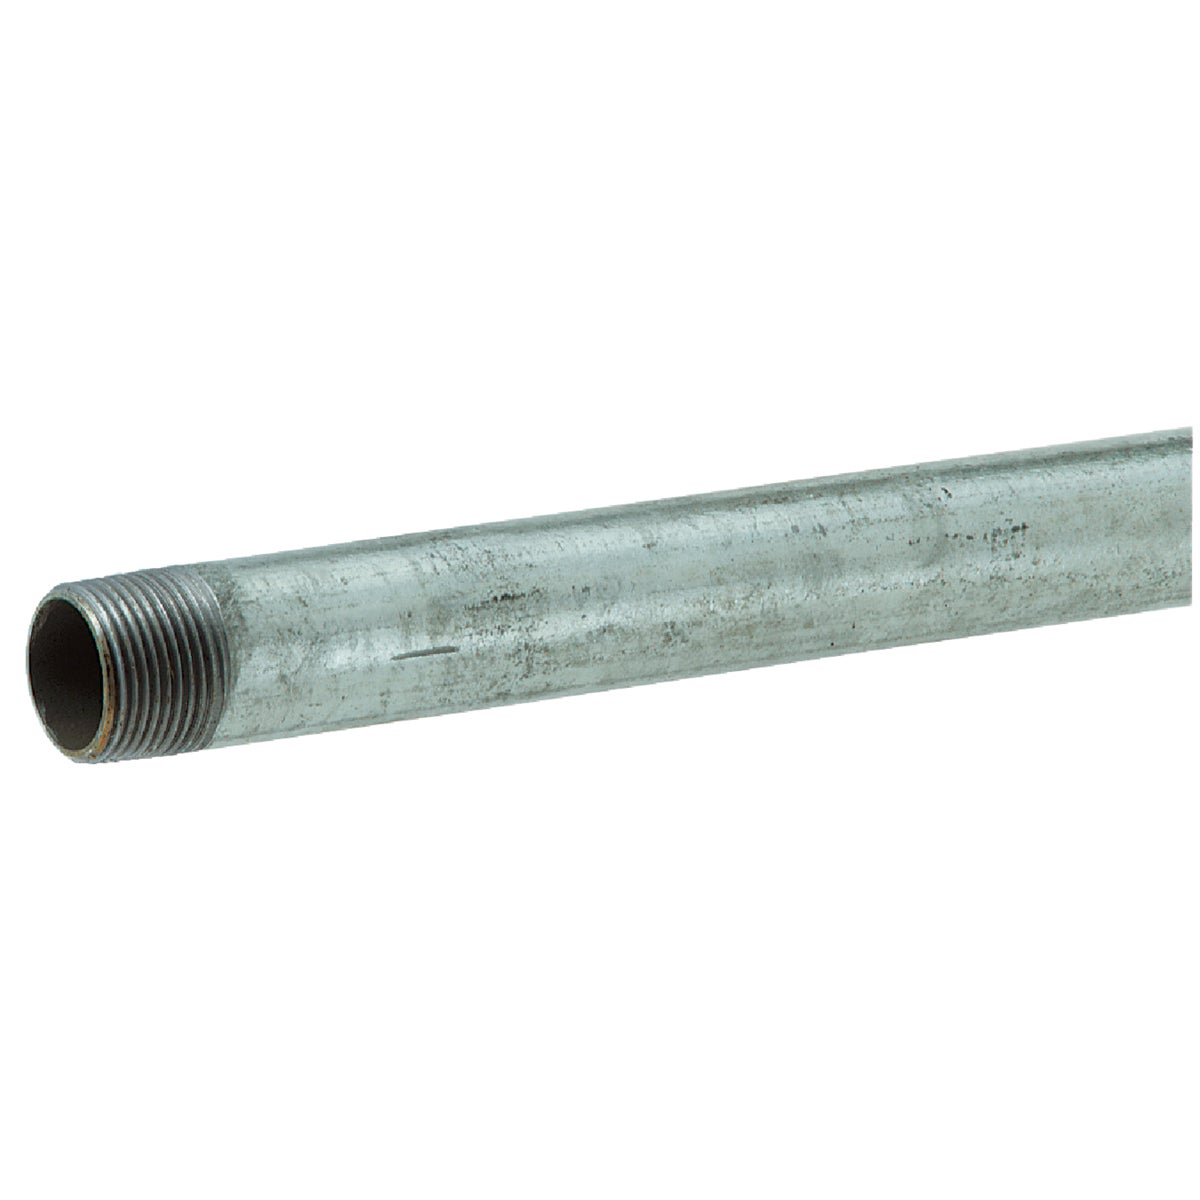 1-1/2X48GALV RDI-CT PIPE